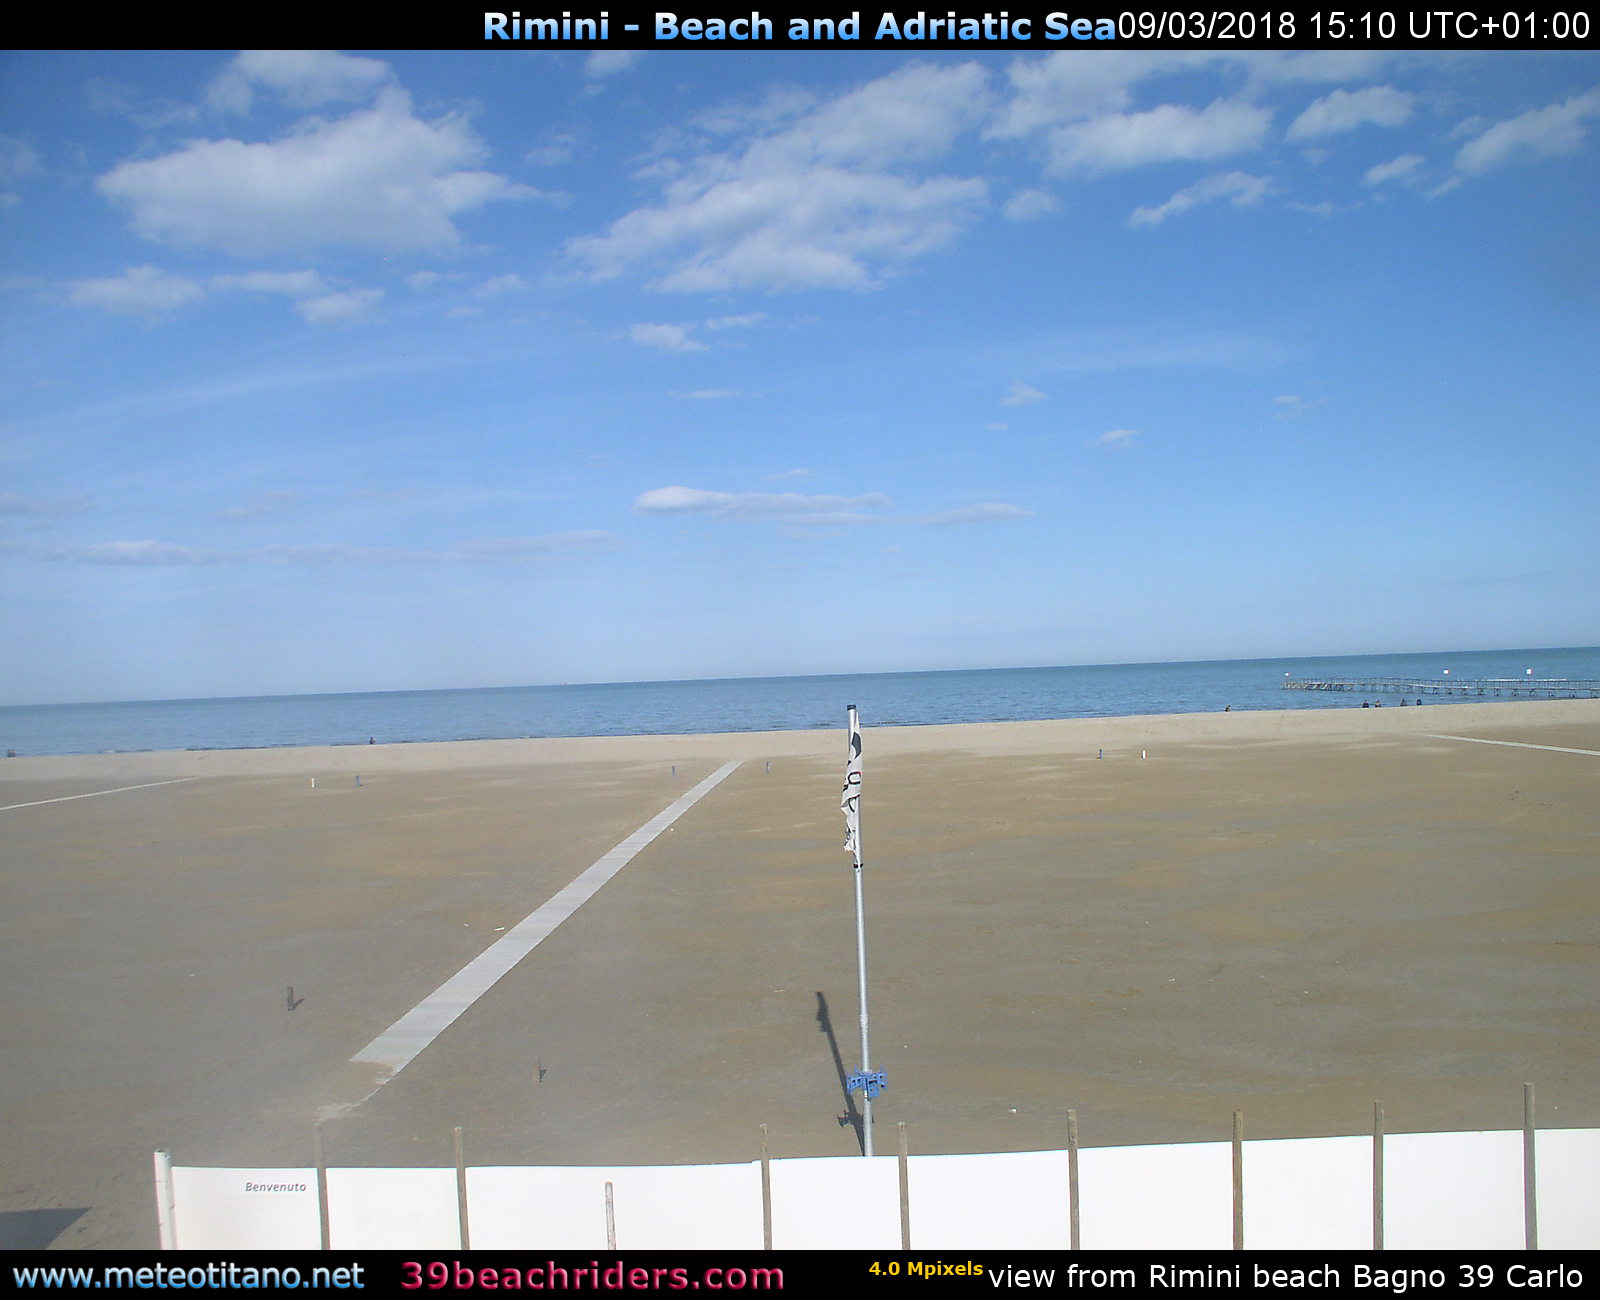 Rimini WebCam